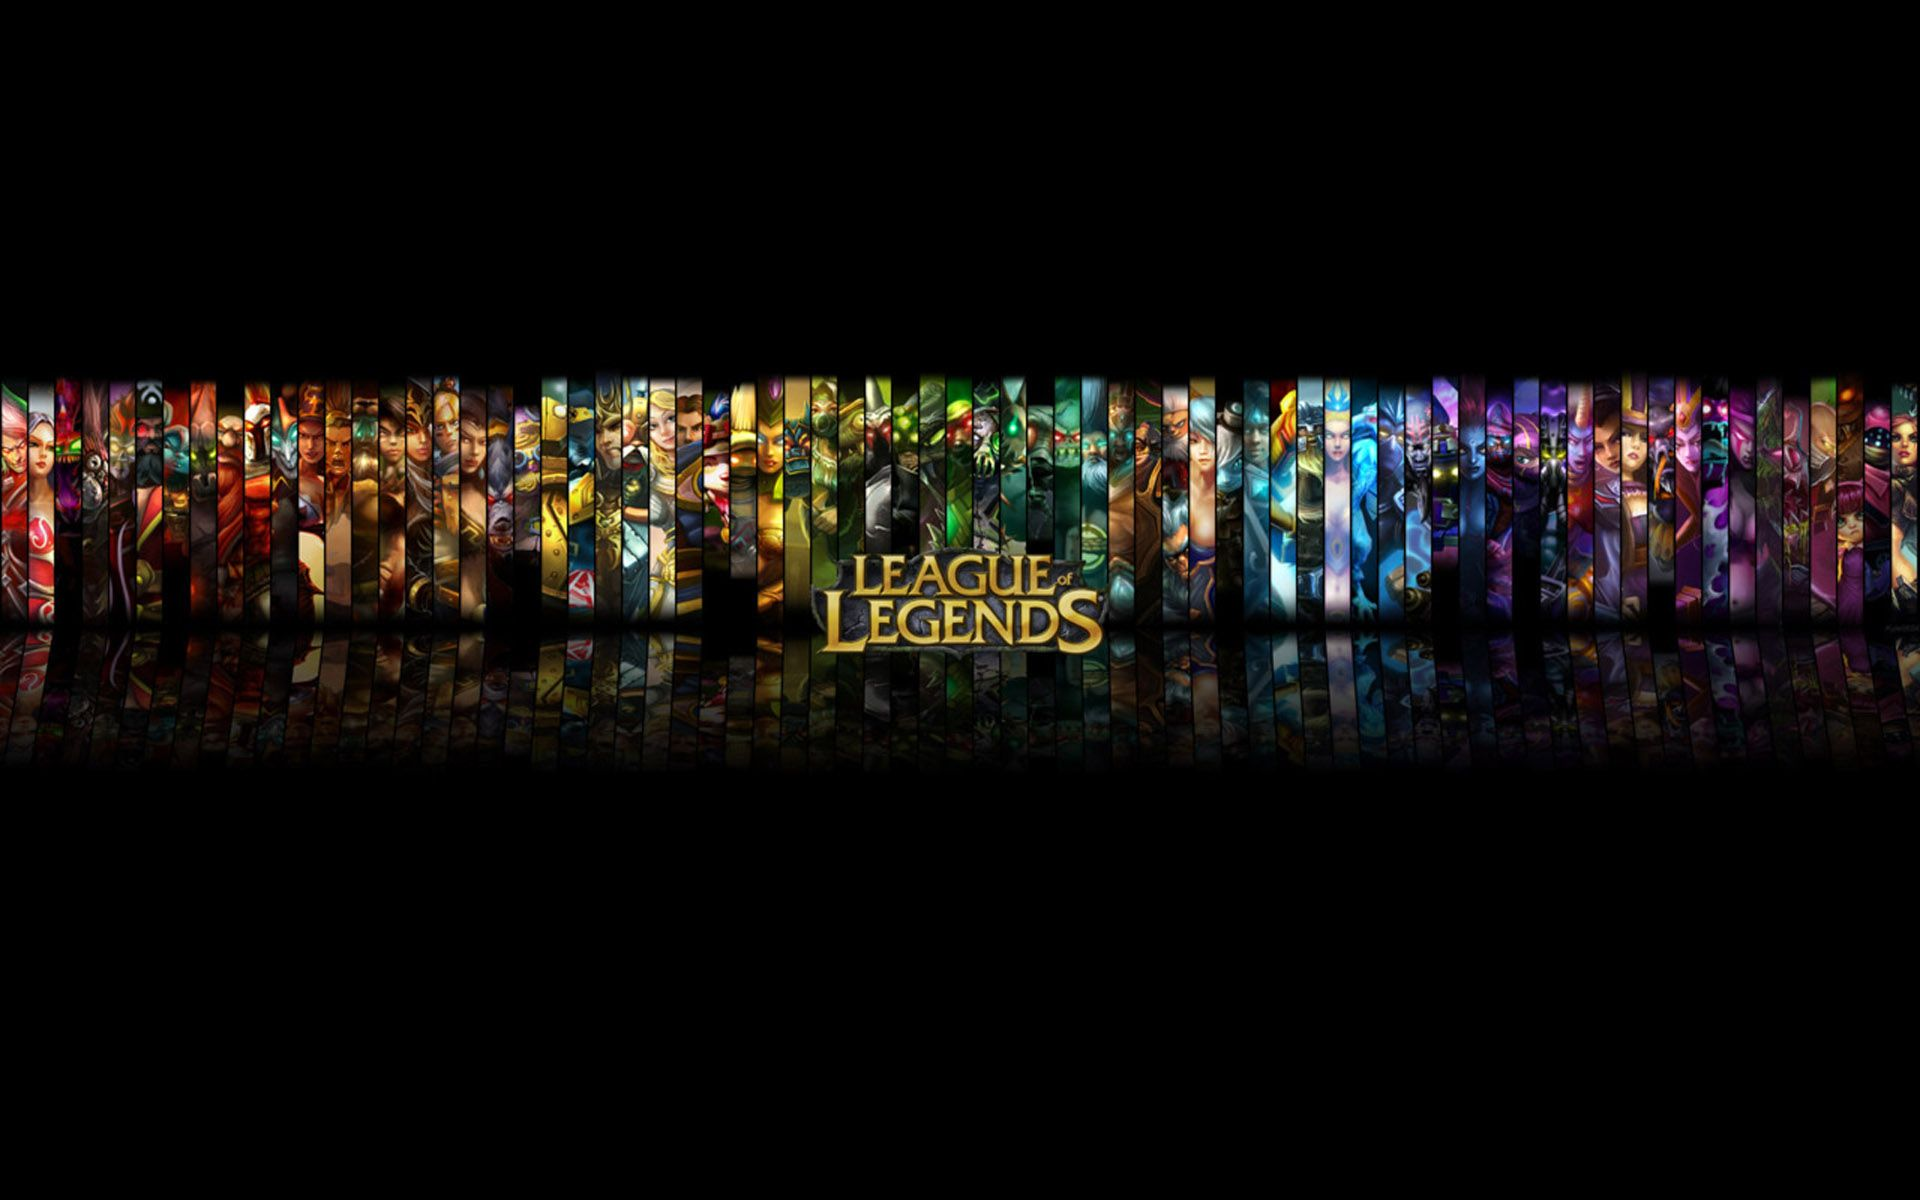 Games League Of Legends League Wallpaper 971811 Wallbase Cc League Of Legends Heroes League Of Legends Game The Legend Of Heroes